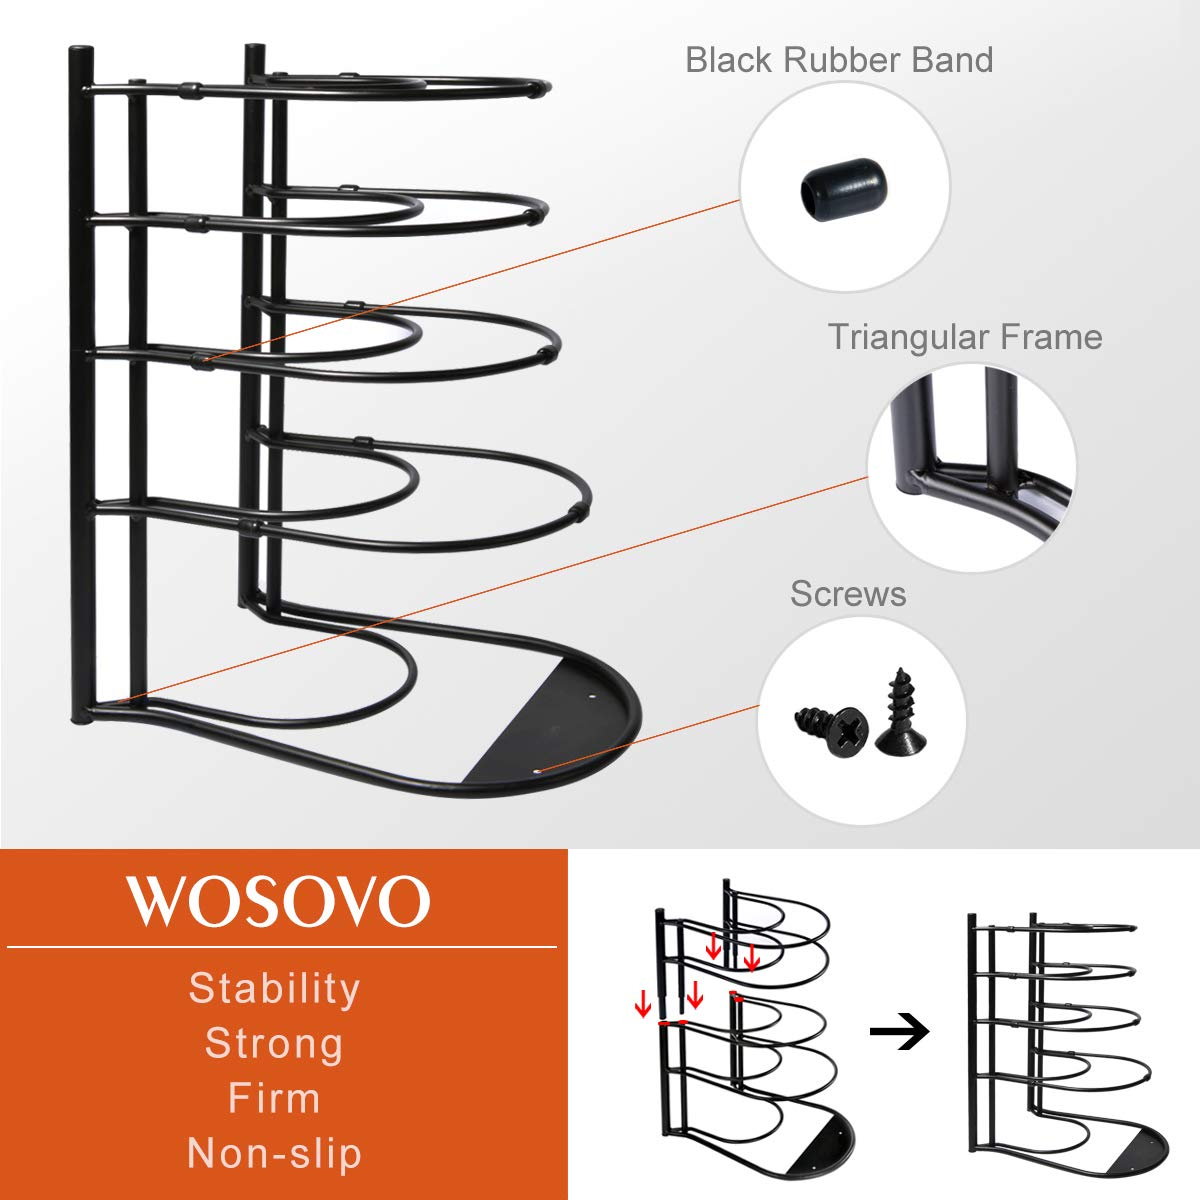 Pan Pot Lid Rack Organizer Shelf Heavy Duty, Kitchen Cabinet Cookware Rack Countertop Pantry Storage Holder, Black (Upgraded version) by WOSOVO (Image #6)